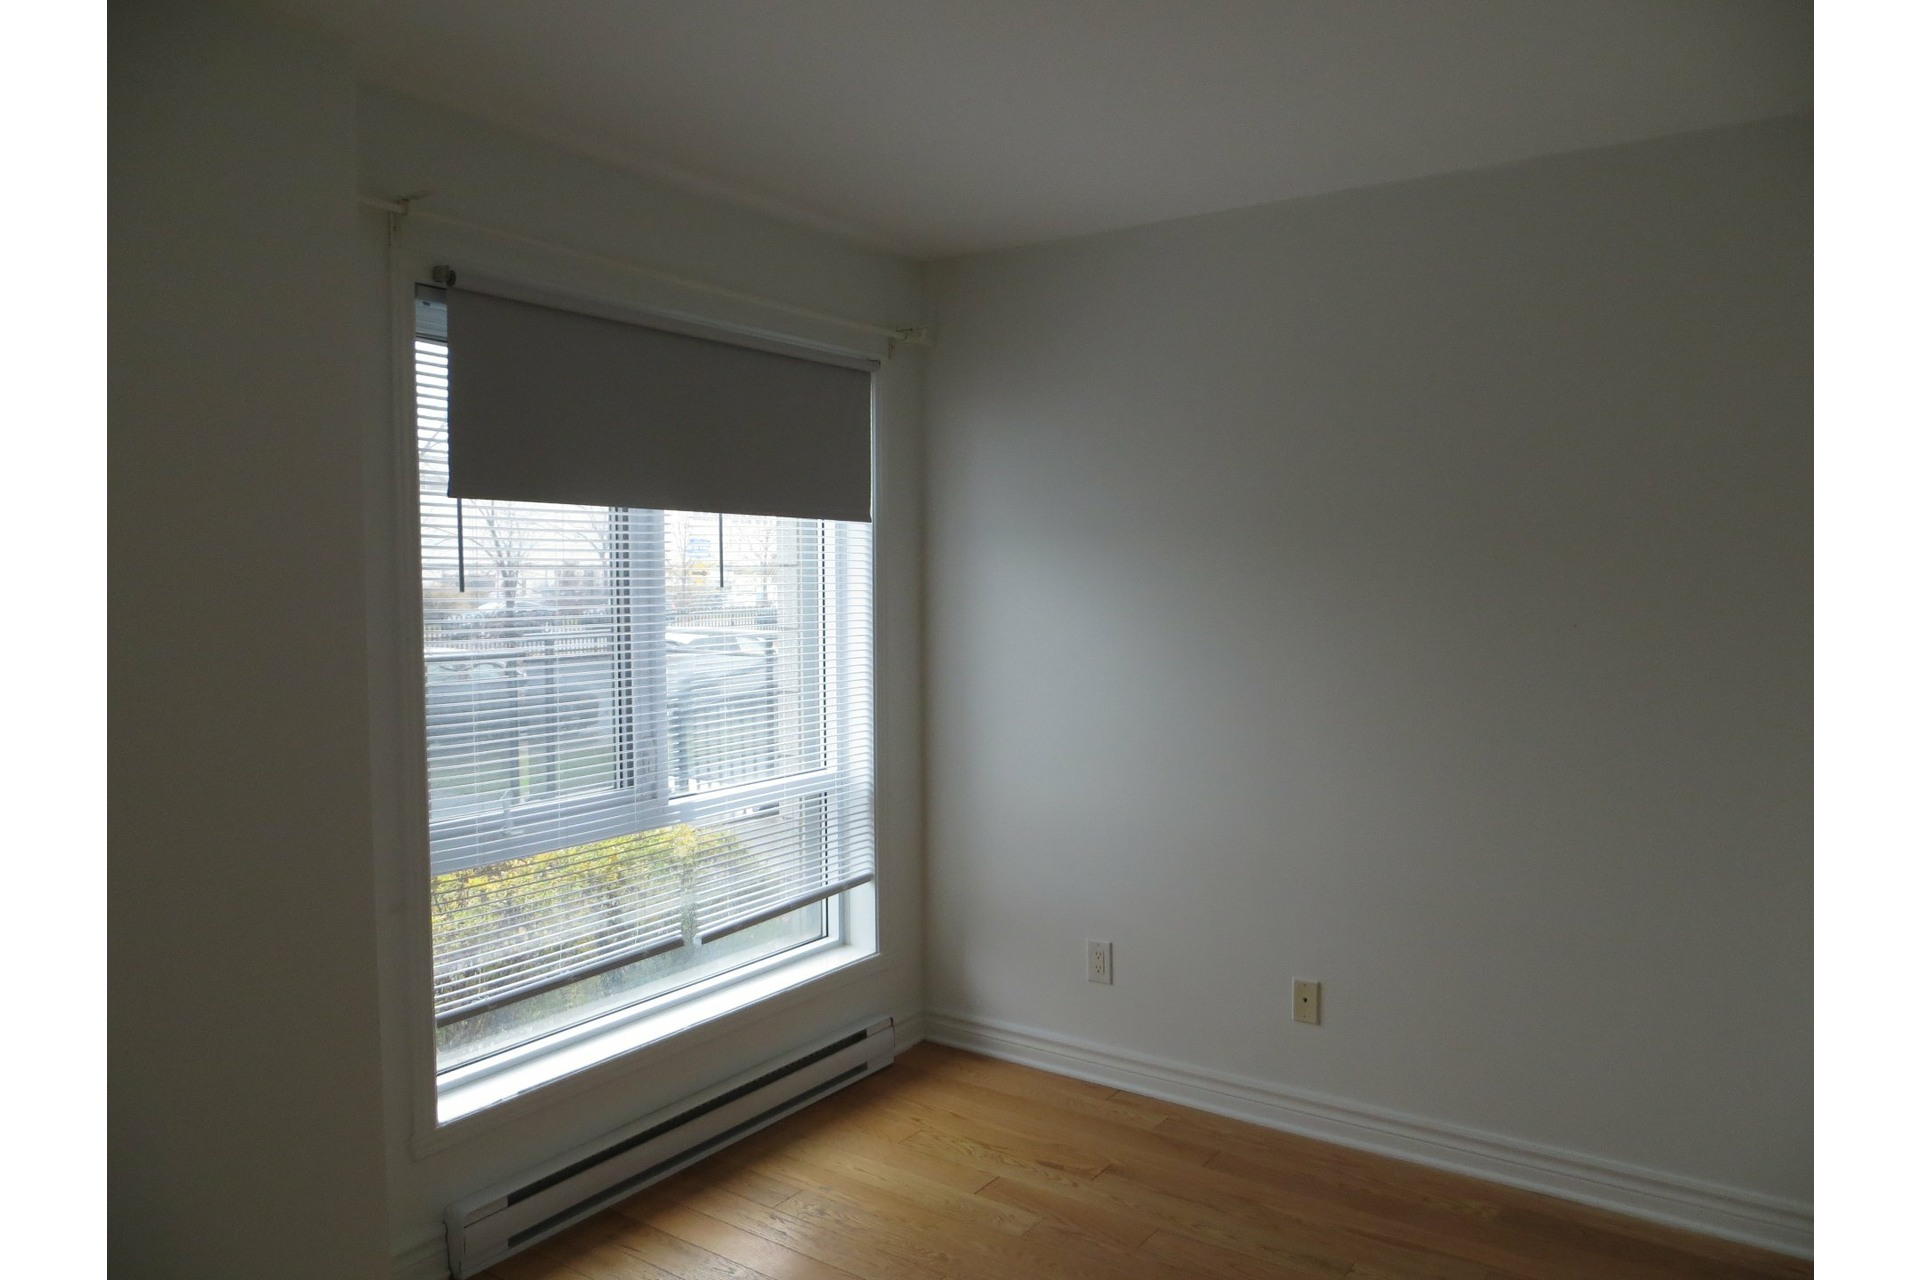 image 17 - Apartment For rent Laval-des-Rapides Laval  - 5 rooms